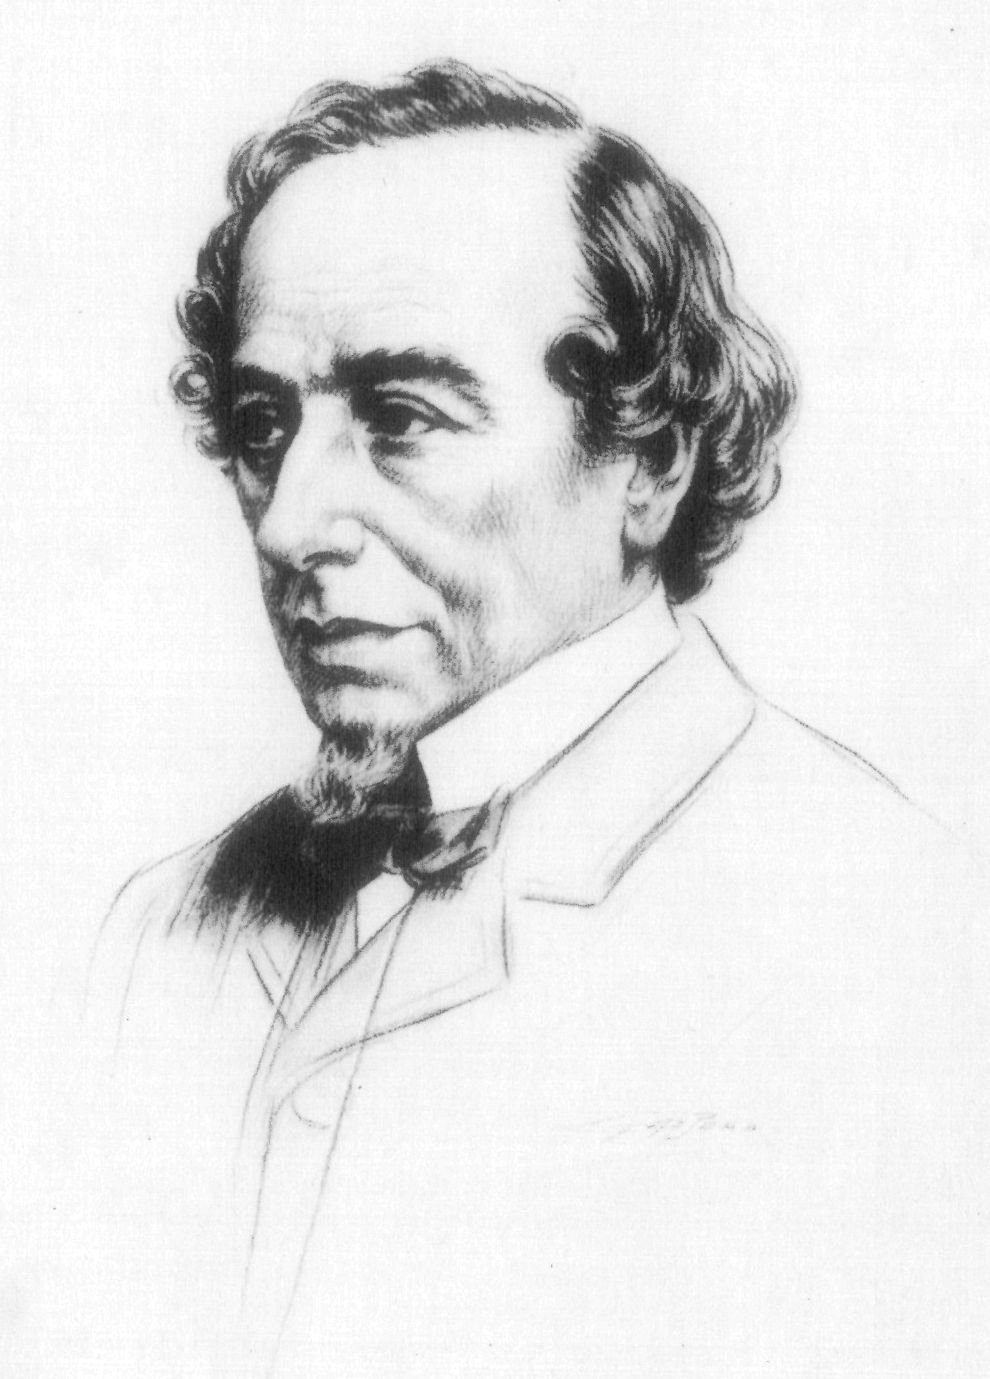 Line drawing of Disraeli